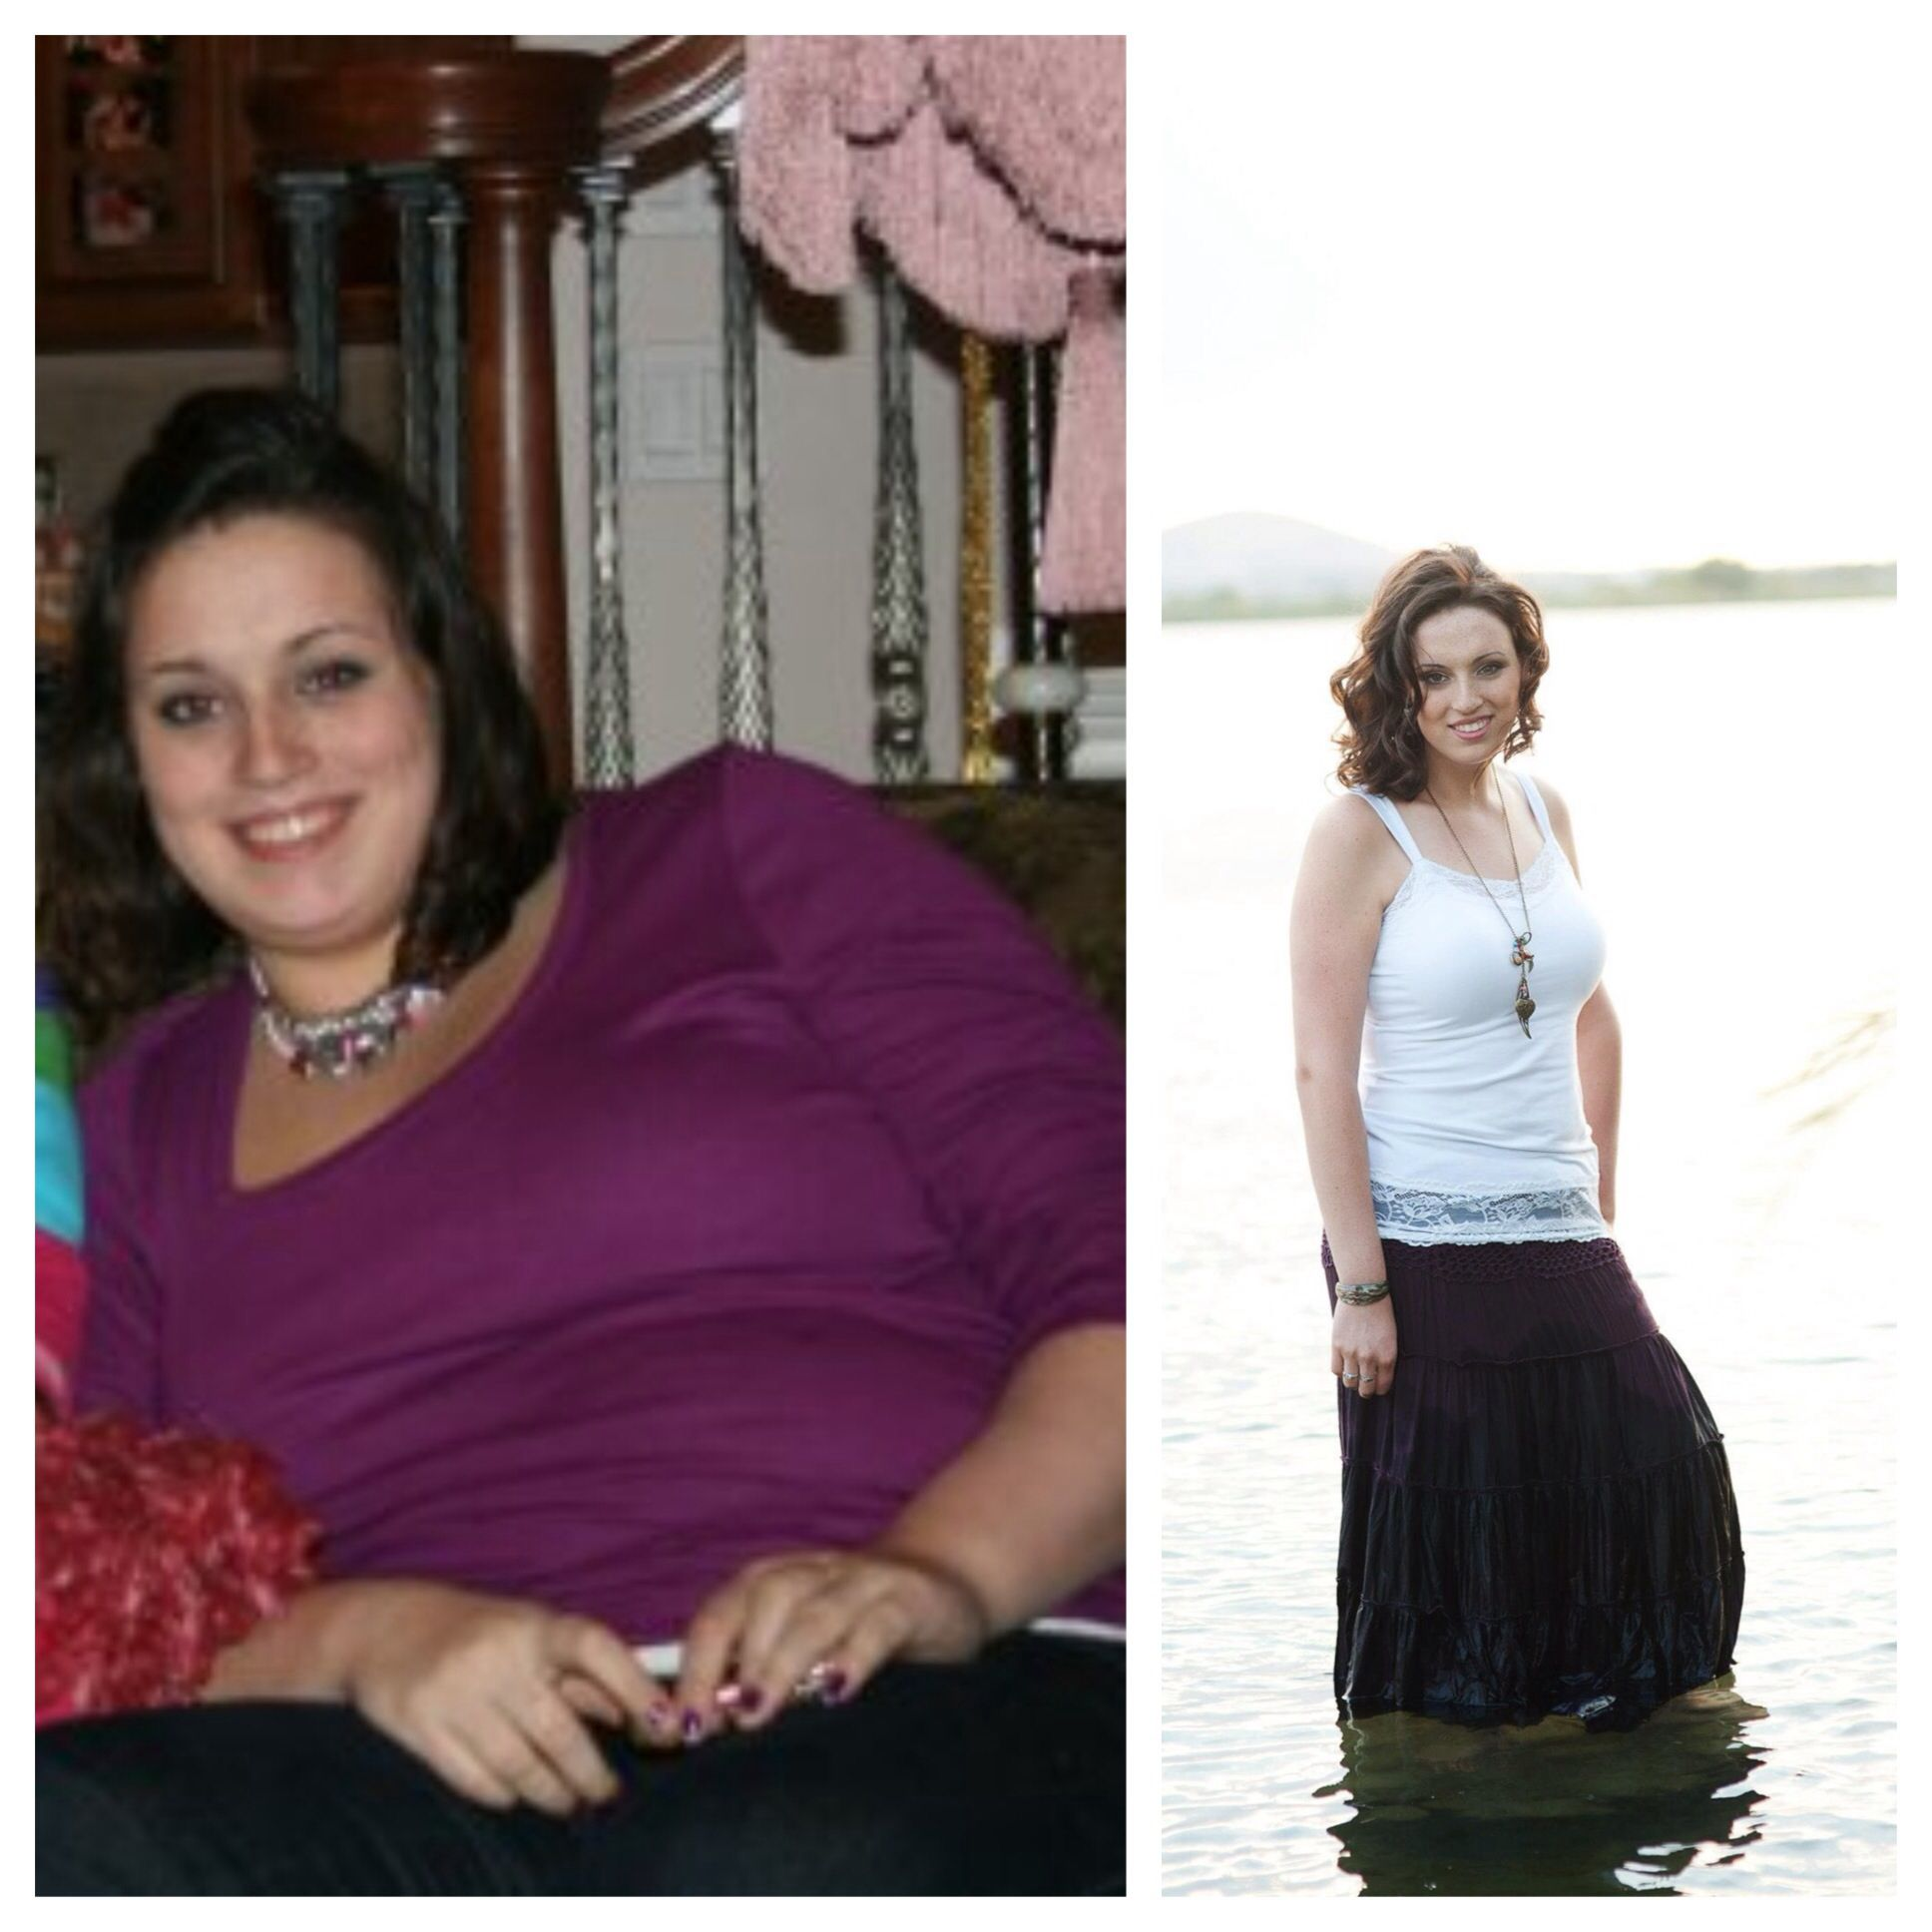 I Wanted To Post A Before And After Picture Of The: Vertical Gastric Sleeve B&A